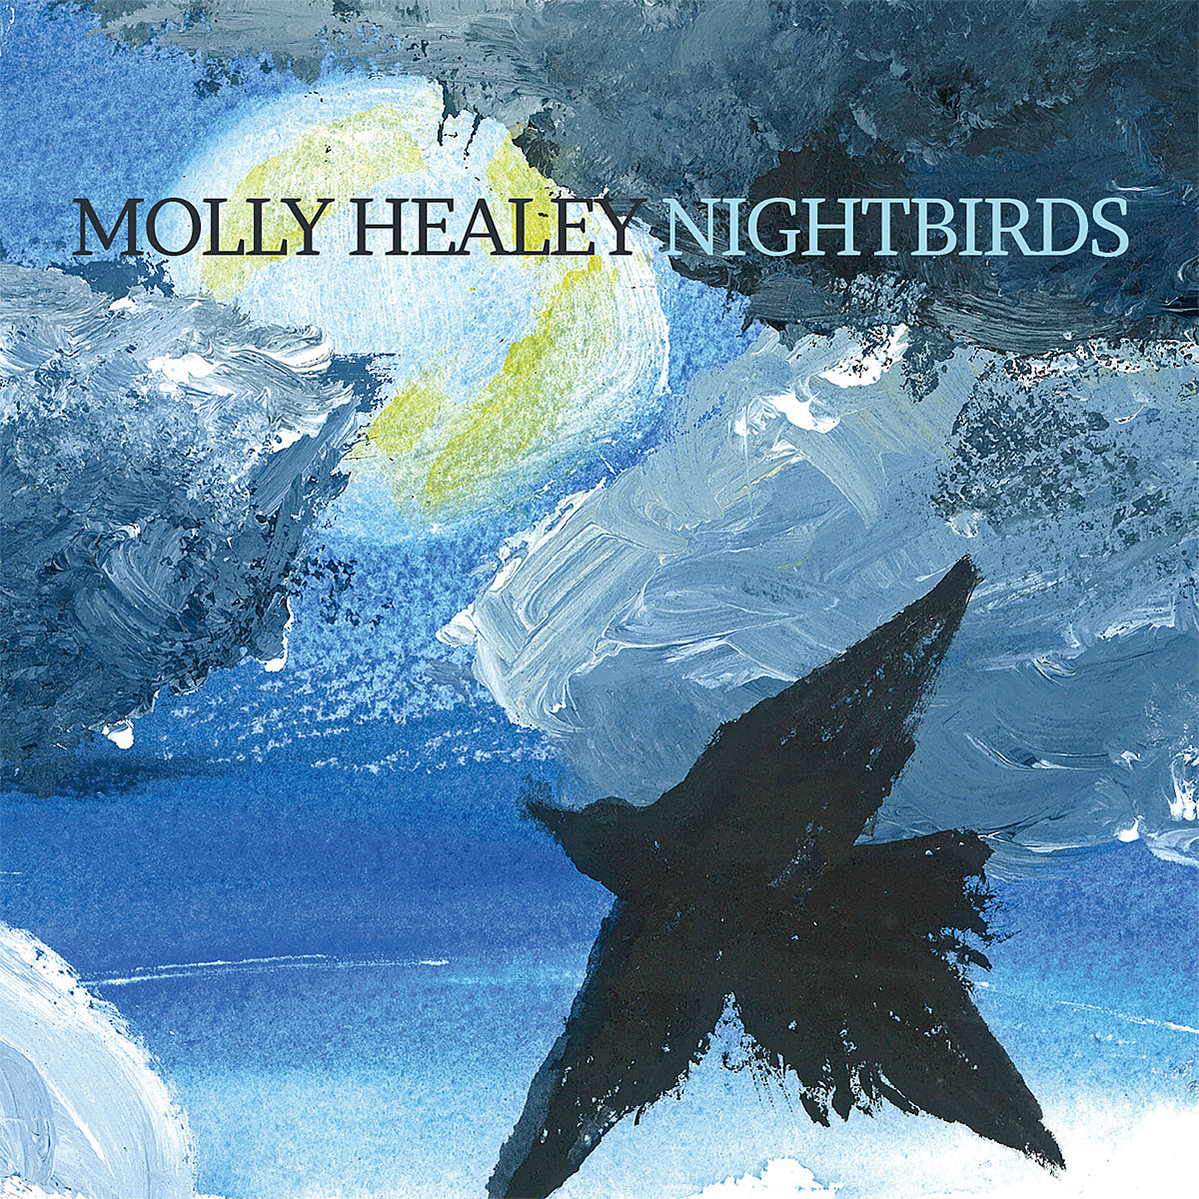 Molly Healey Nightbirds